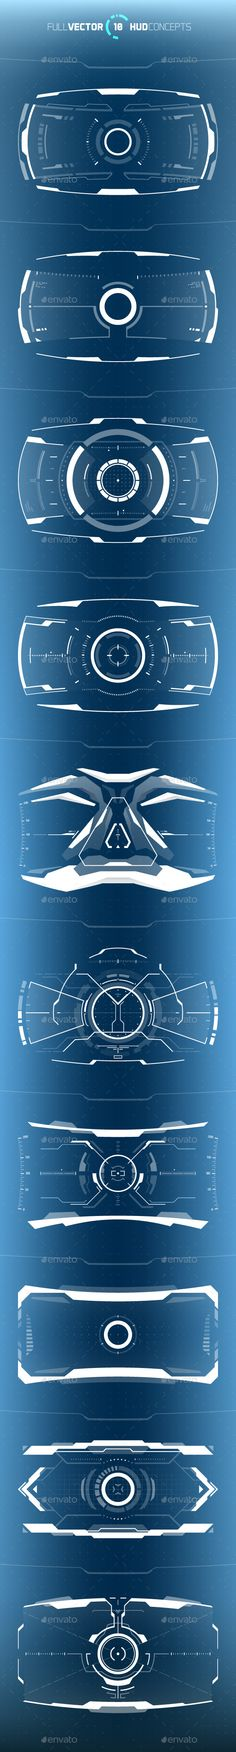 Buy Conceptual 10 Hi-Tech HUD Set by on GraphicRiver. Set of 10 vector HUD concepts for futuristic and hi-tech graphical user interfaces, science content, virtual reality . Vector Design, Ui Design, Book Design, Graphic Design, Flyer Design, Installation Manual, Futuristic Technology, User Interface Design, Cool Tech